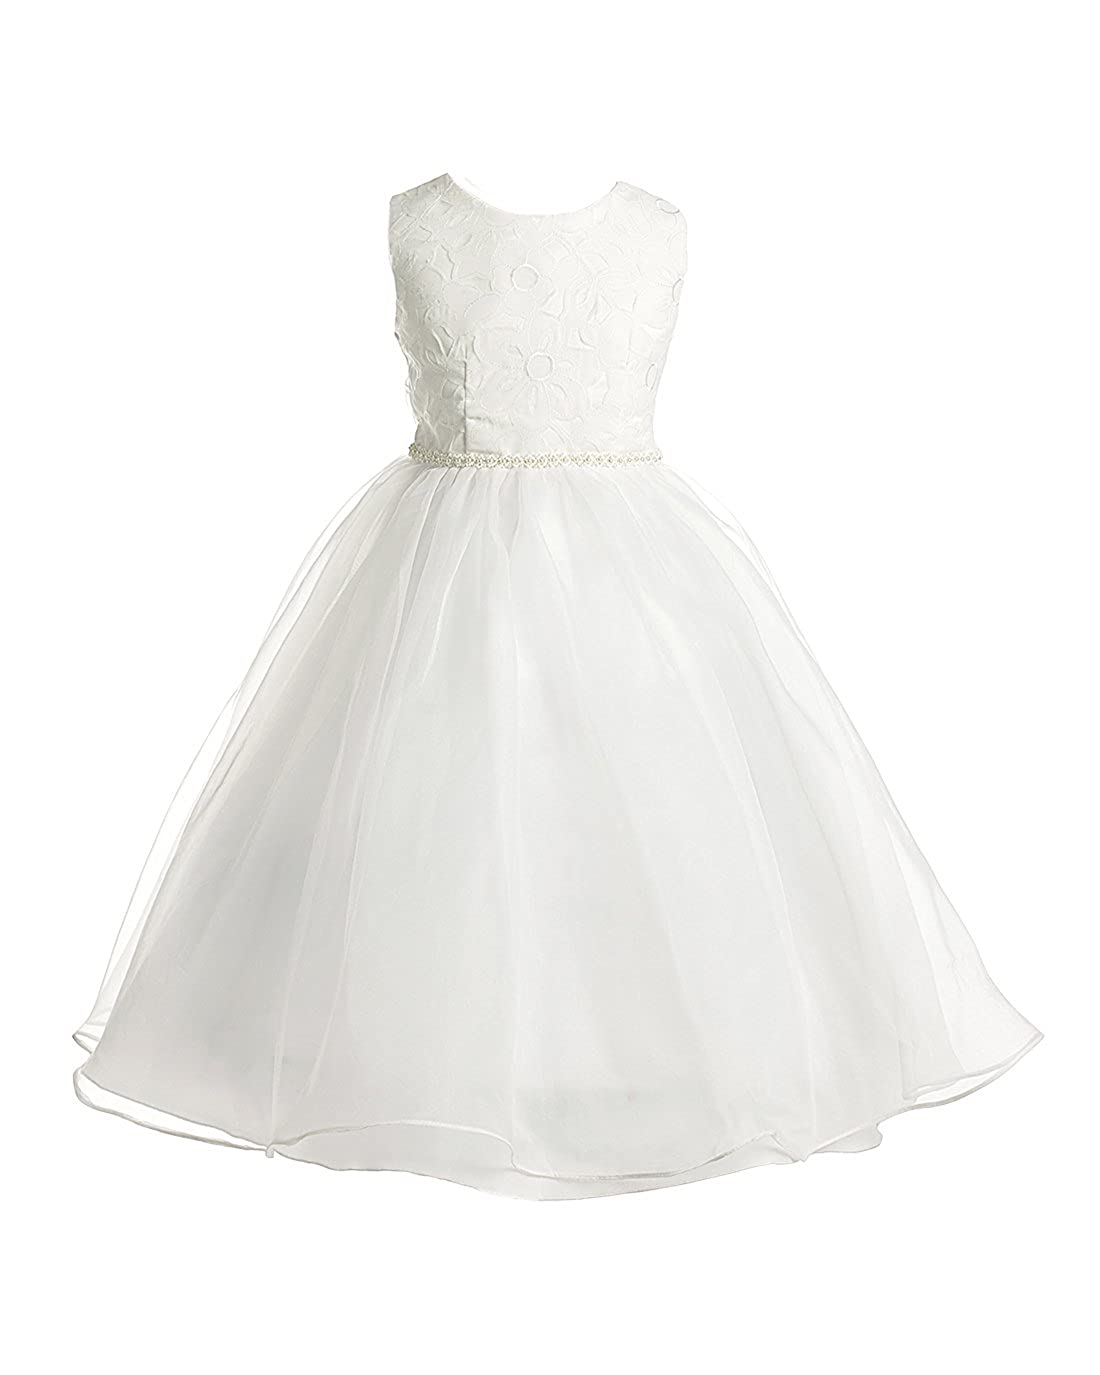 Amazon Joy Kids Girls Lace Special Occasion Flower Girl Ankle